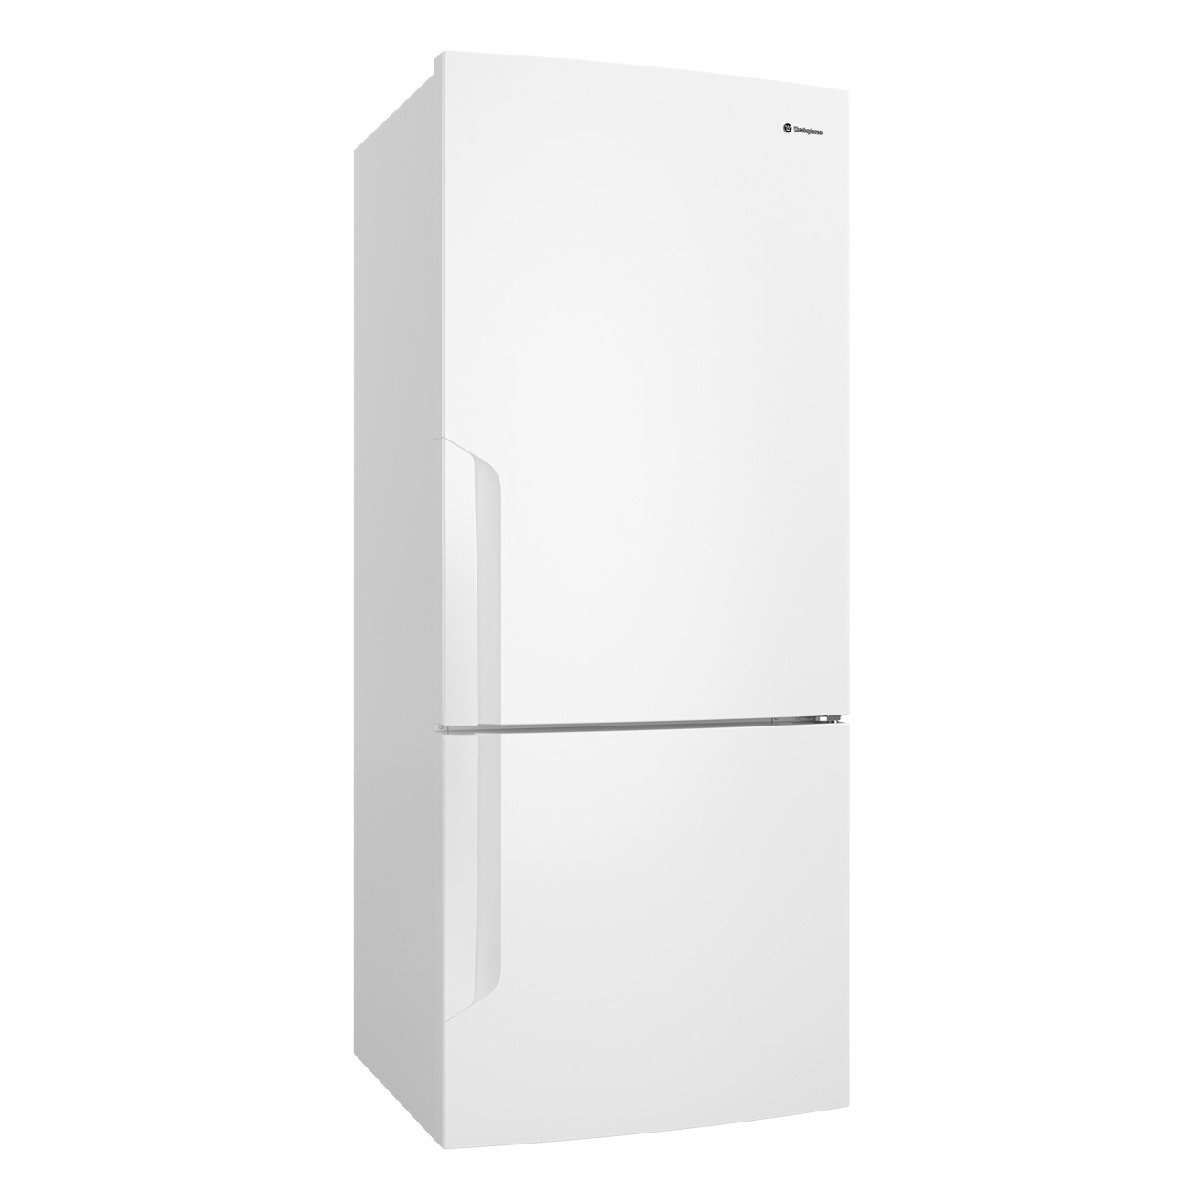 Westinghouse WBE4500WAR 453L Bottom Mount Fridge